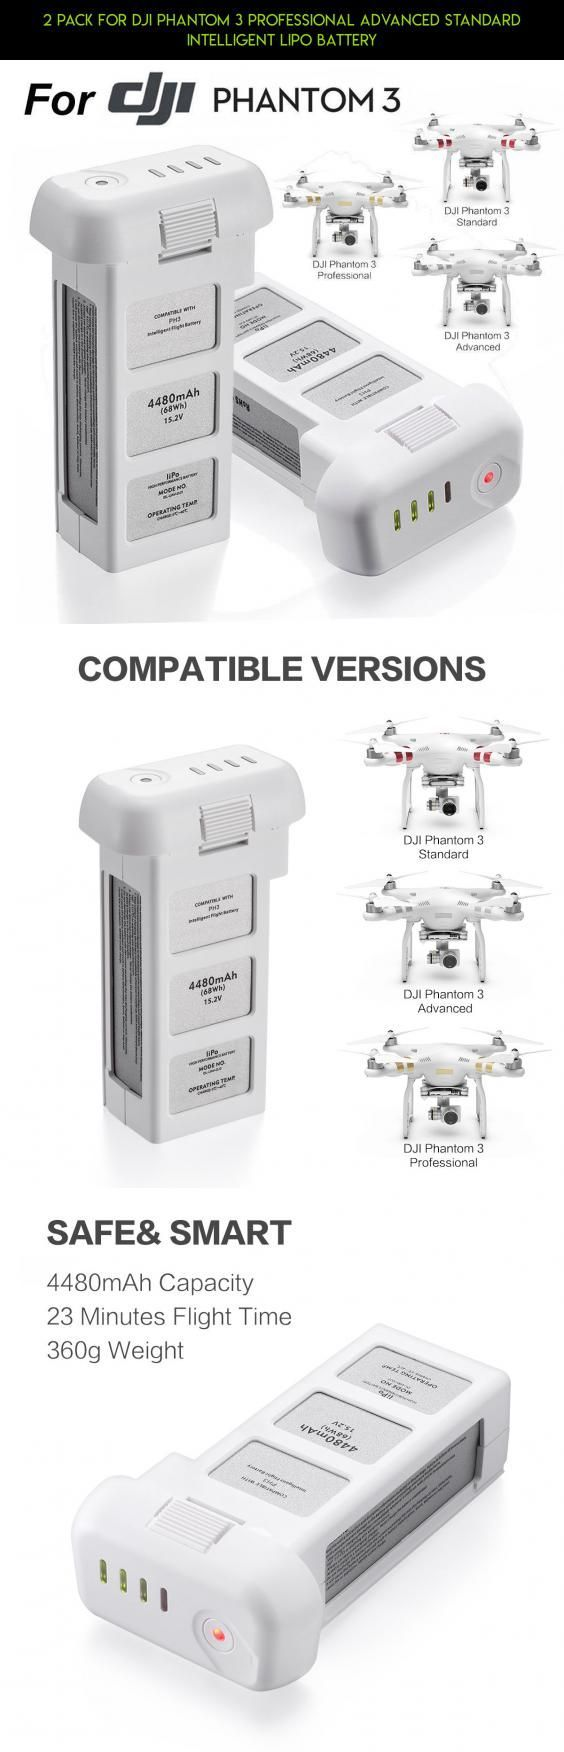 2 Pack For DJI Phantom 3 Professional Advanced Standard Intelligent LiPo Battery #tech #battery #gadgets #standard #camera #2 #drone #plans #dji #products #technology #fpv #3 #kit #shopping #racing #parts #phantom